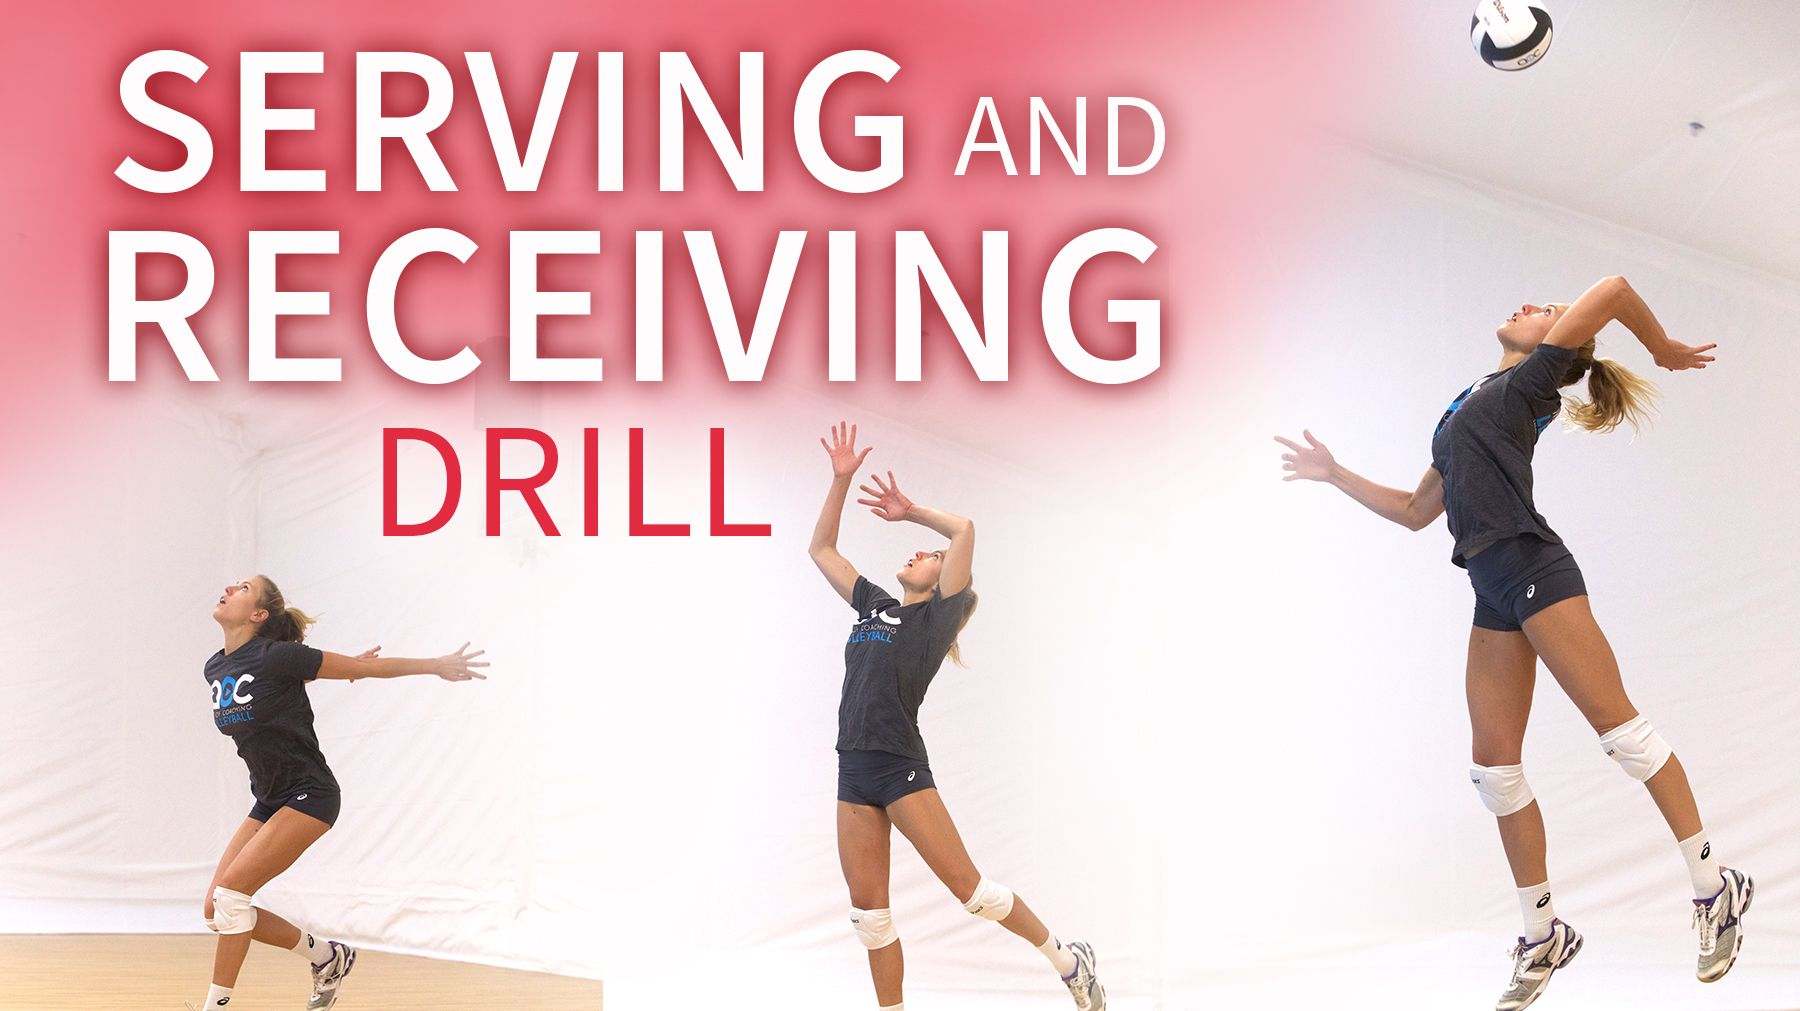 Competitive Serving And Receiving Drill From Sweden The Art Of Coaching Volleyball Coaching Volleyball Volleyball Workouts Volleyball Practice